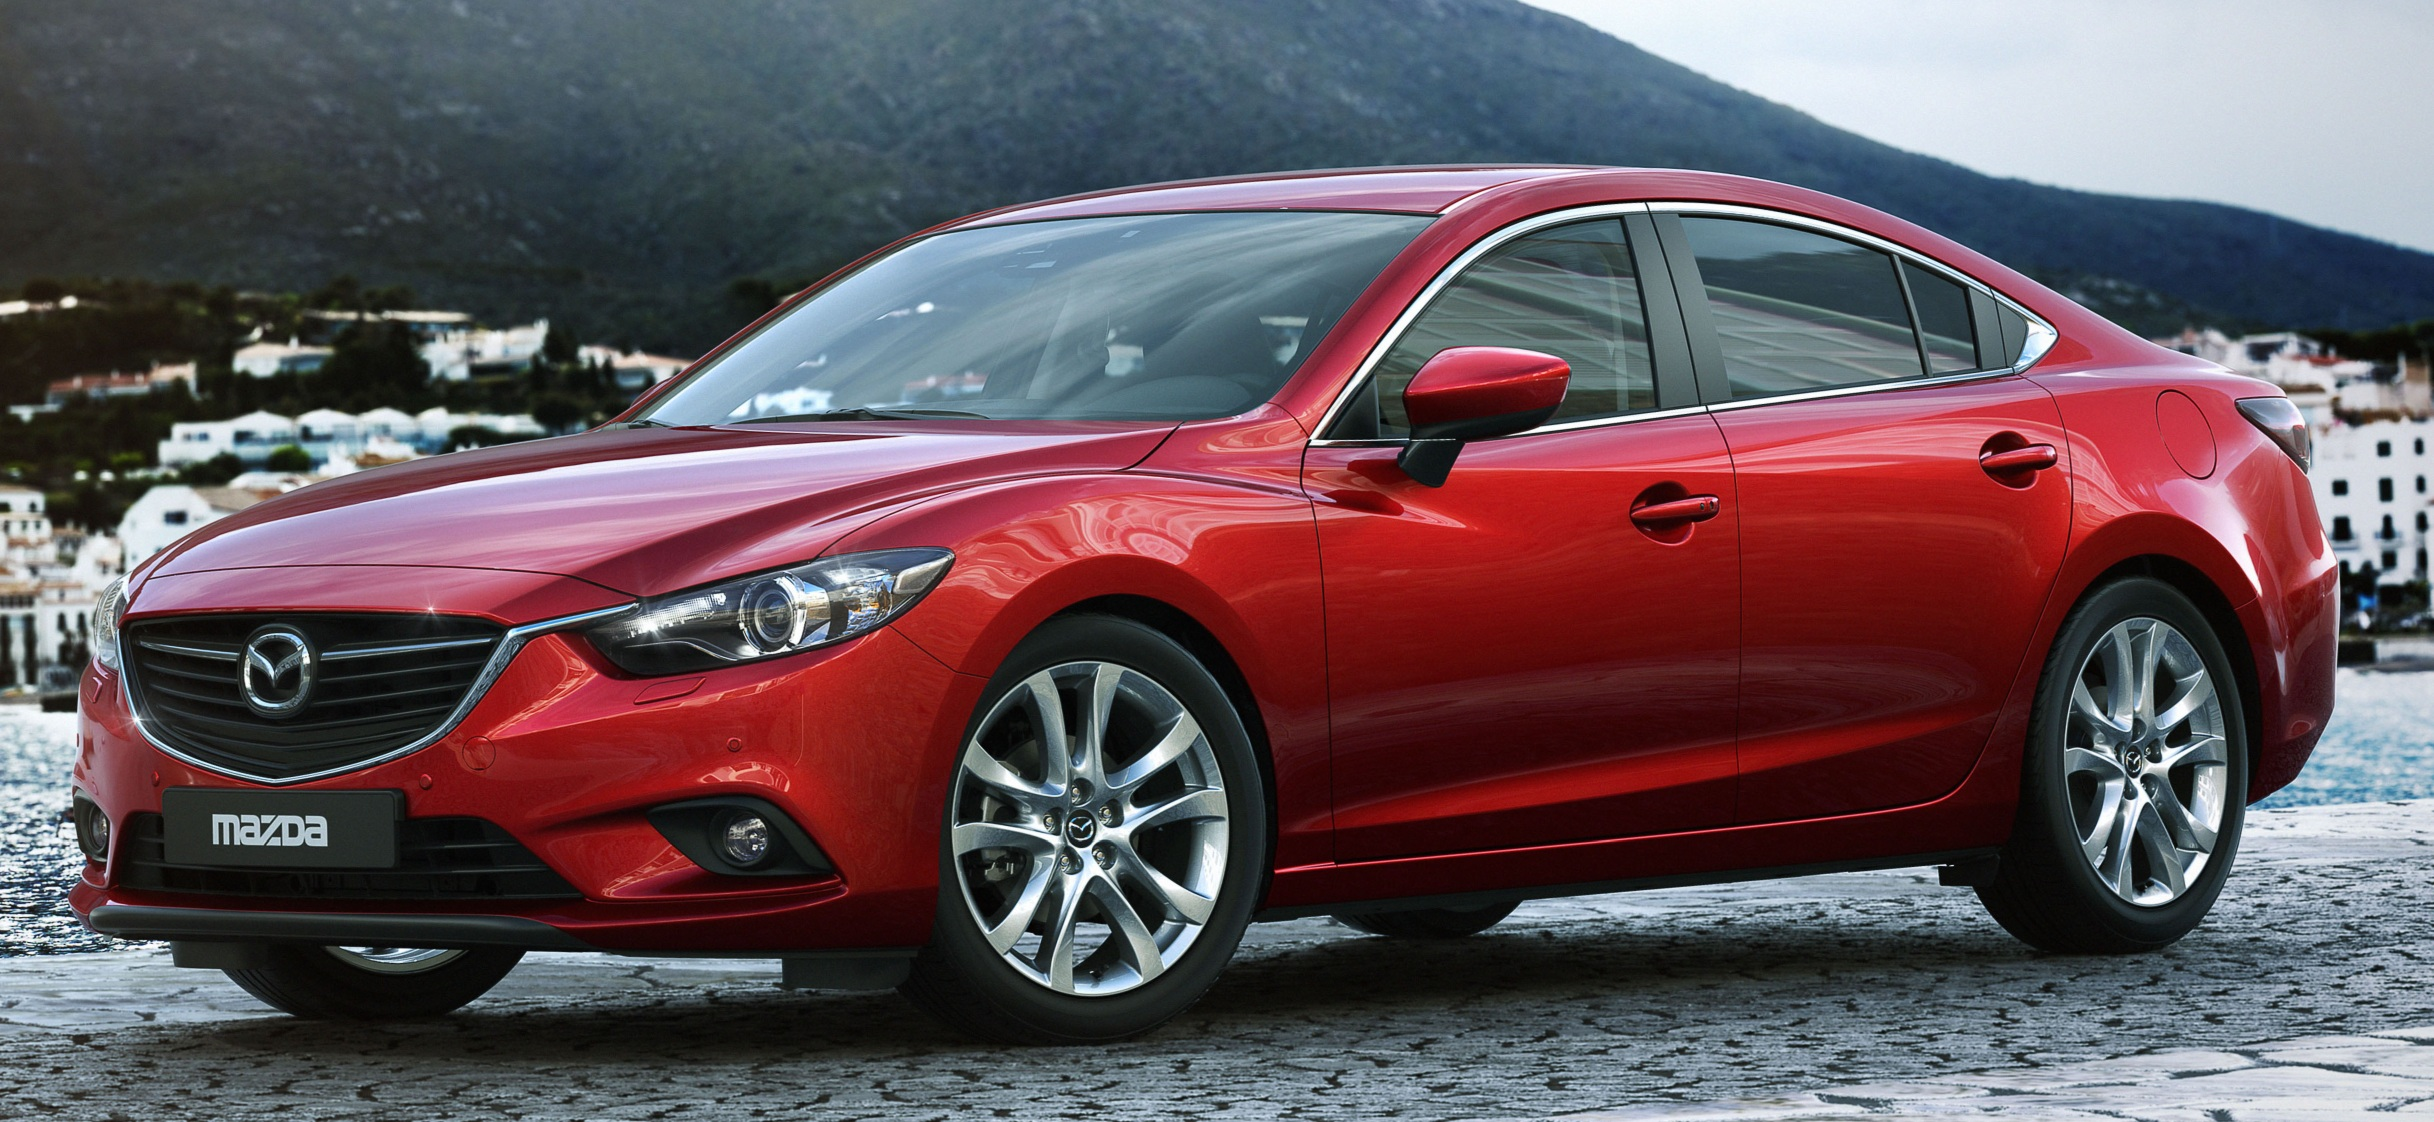 All About Cars >> Mazda6 recall programme involves 40 cars in Malaysia Image 164470